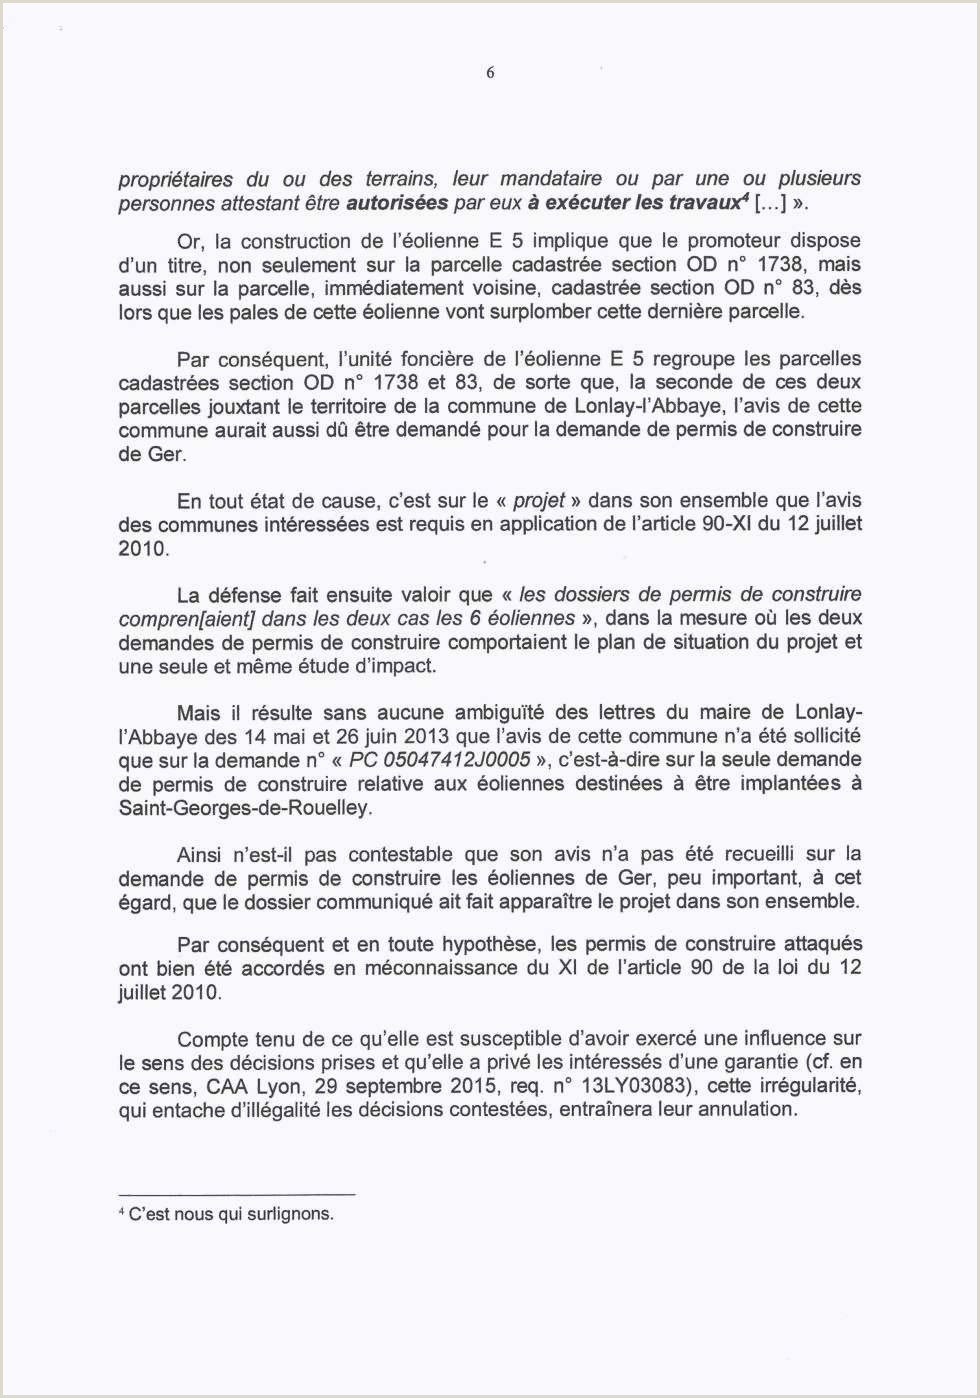 Cv format for Second Job Lettre De Motivation Pour Un Second Emploi Lettre De